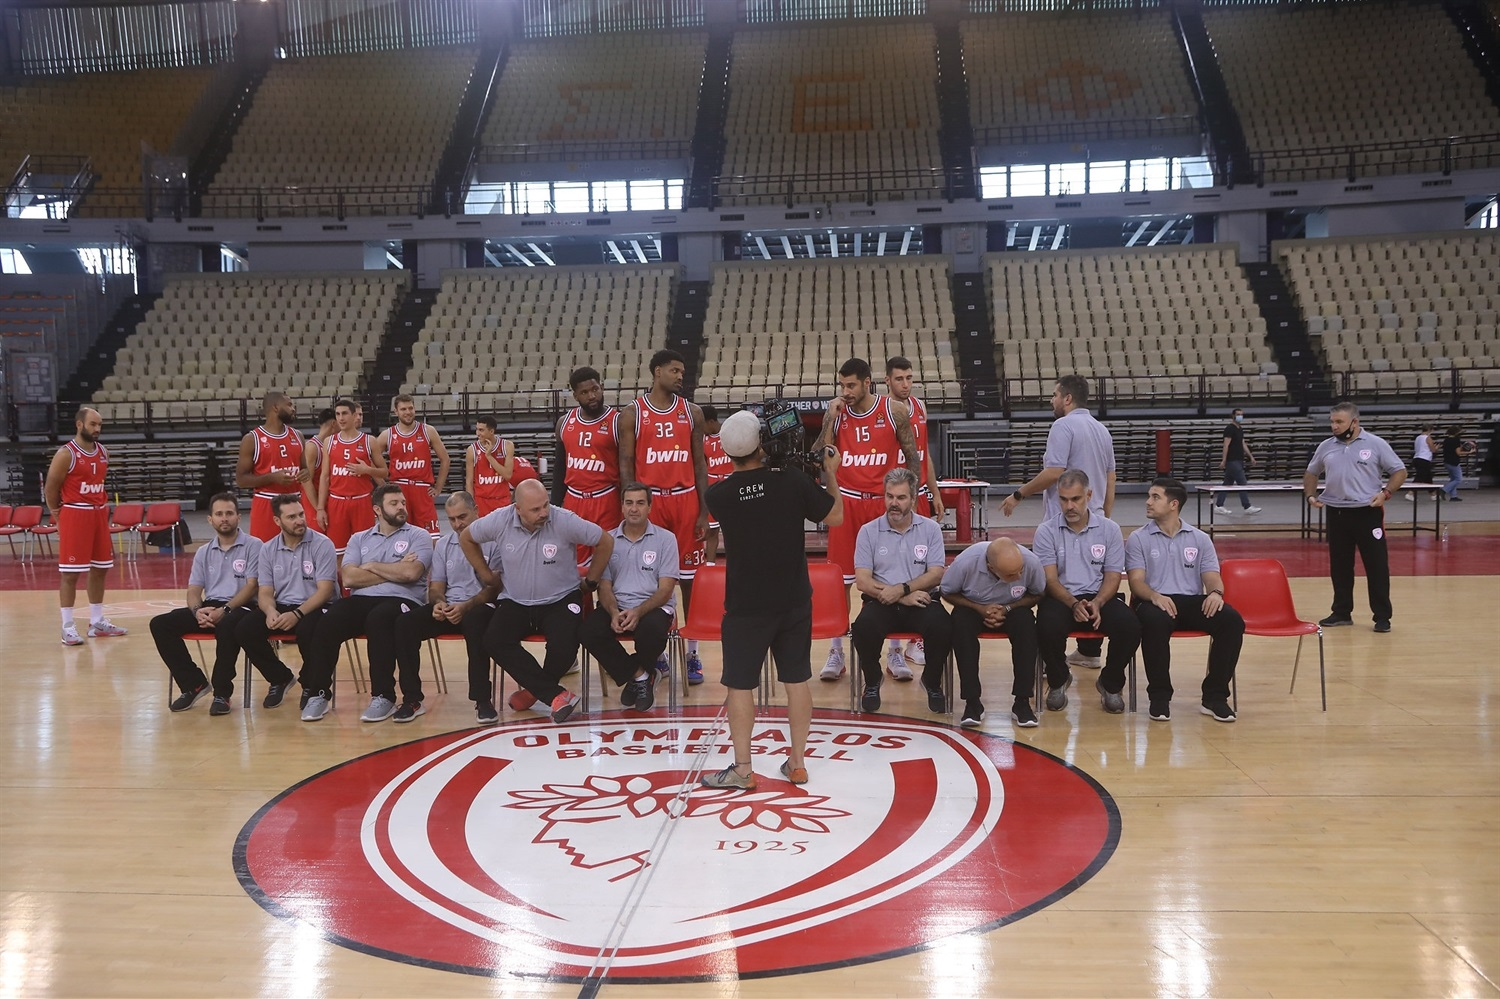 Olympiacos Piraeus media Day 2020 - EB20